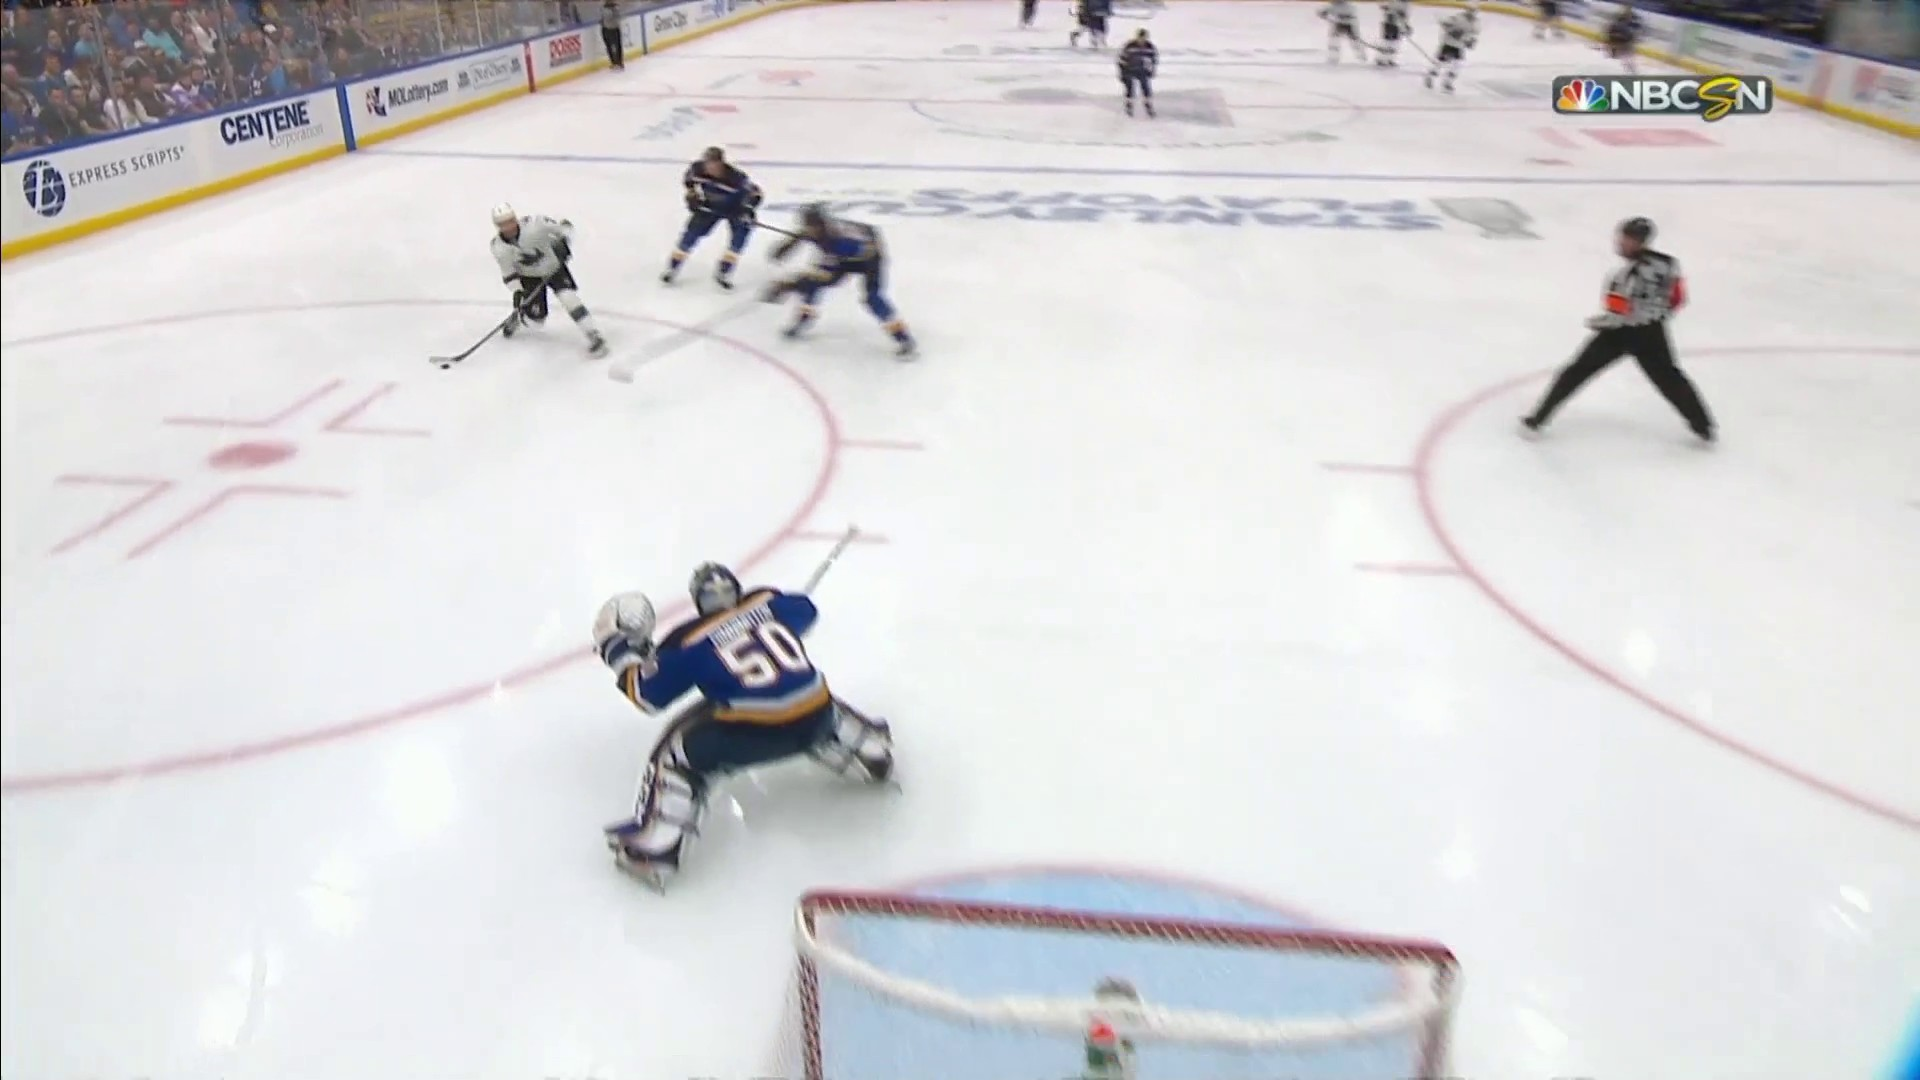 Dylan Gambrell scores against Blues in Game 6 for first career NHL goal